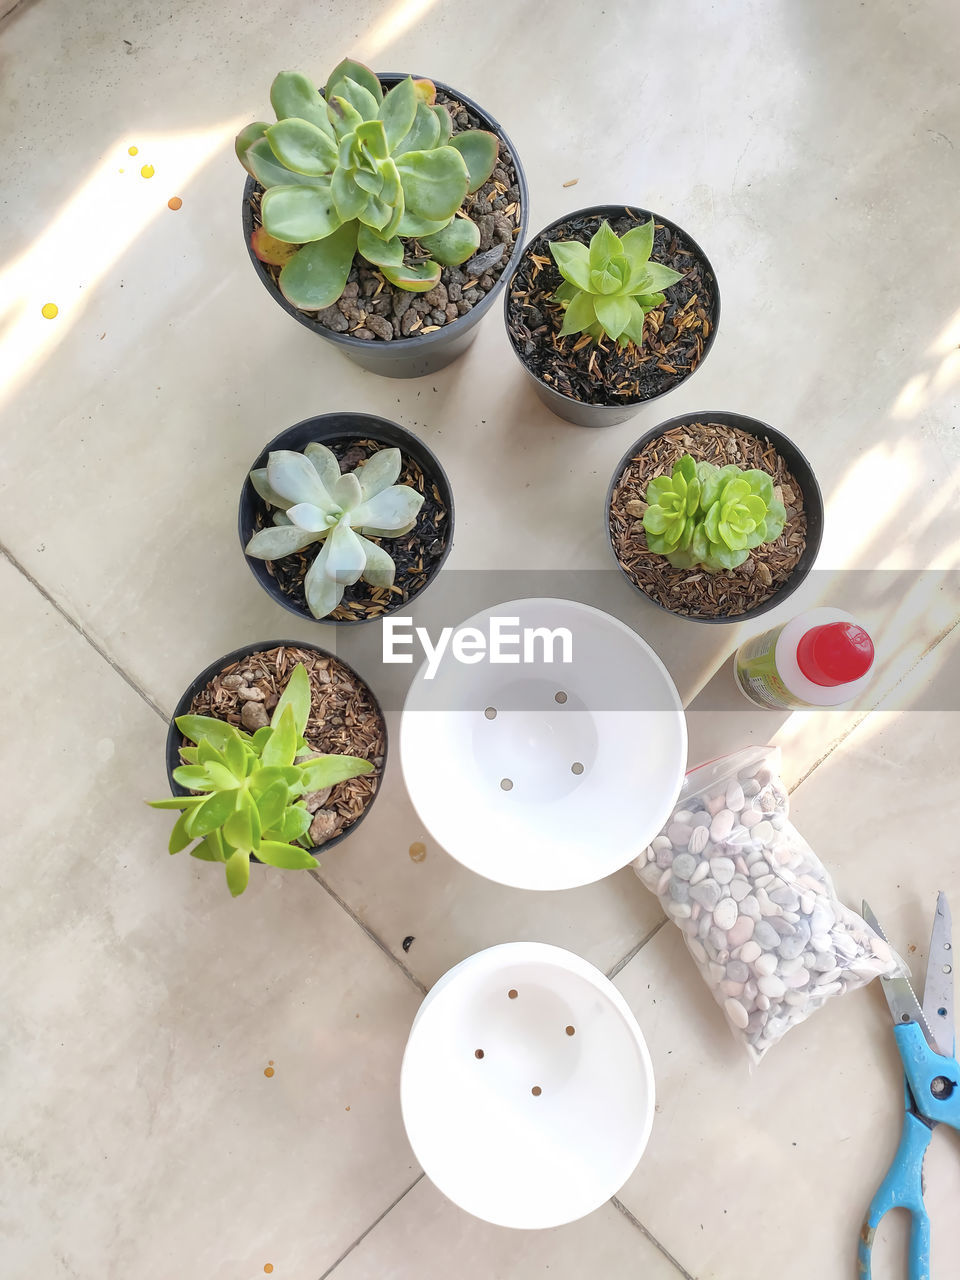 HIGH ANGLE VIEW OF SUCCULENT PLANT IN PLATE ON TABLE